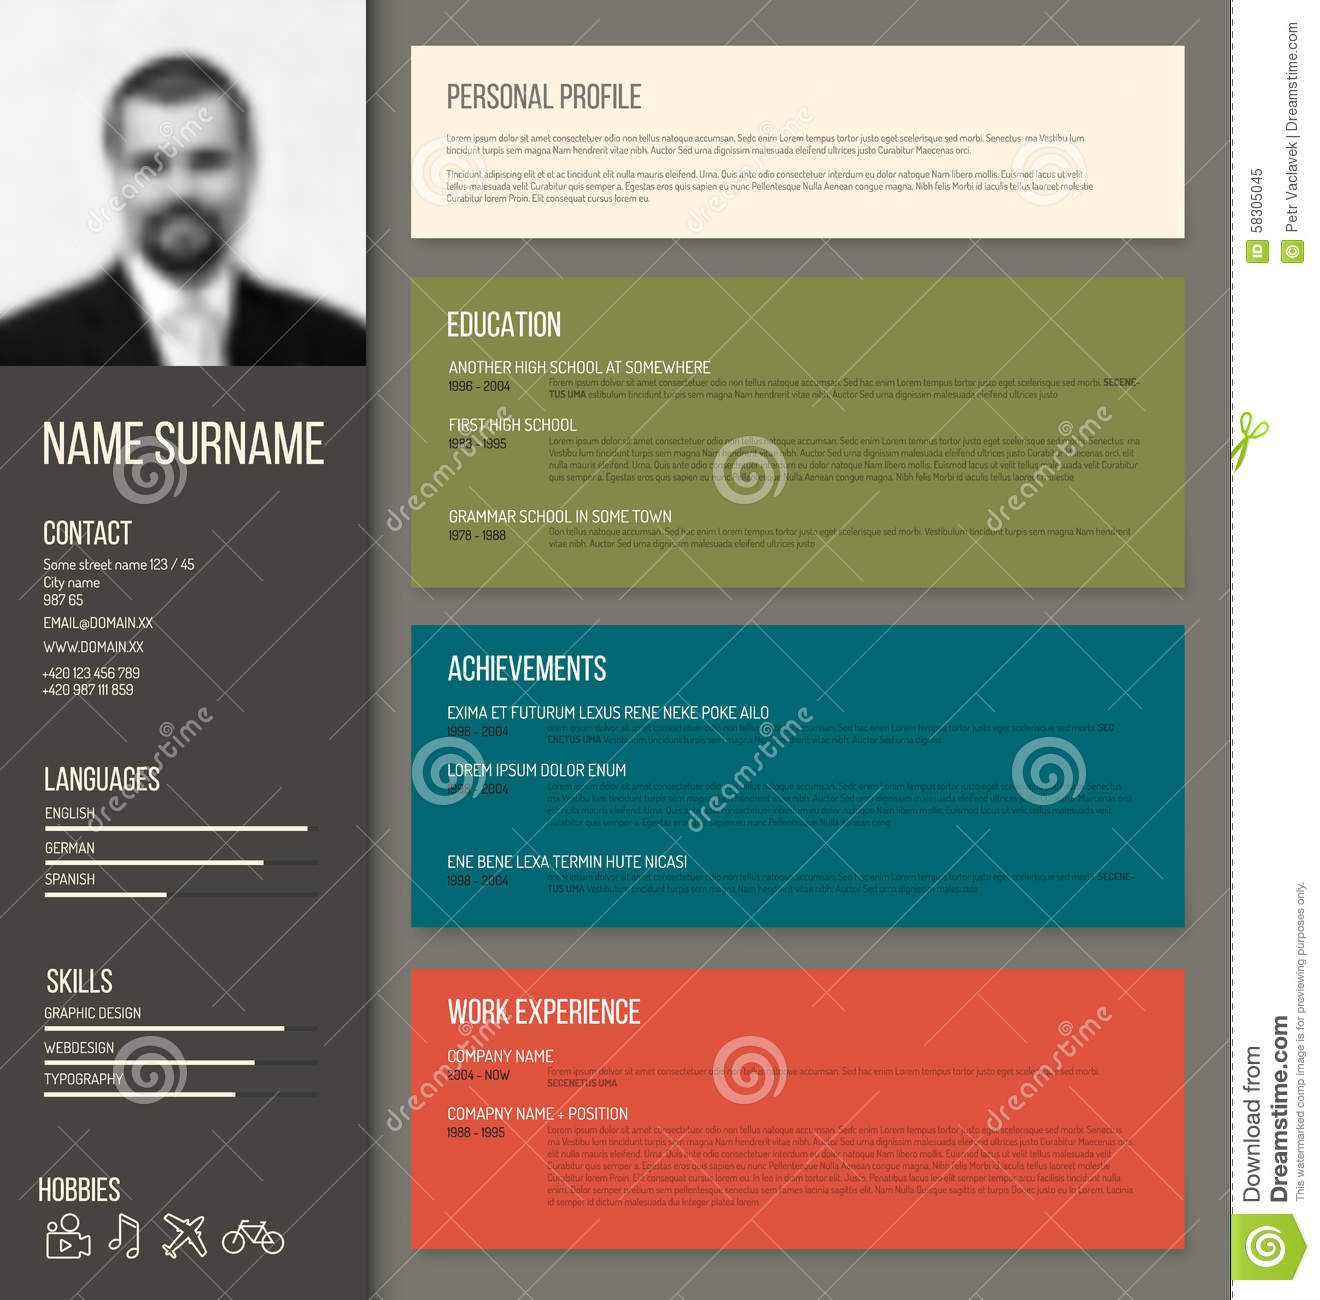 Minimalistic cv resume template stock vector image for Personal profile design templates